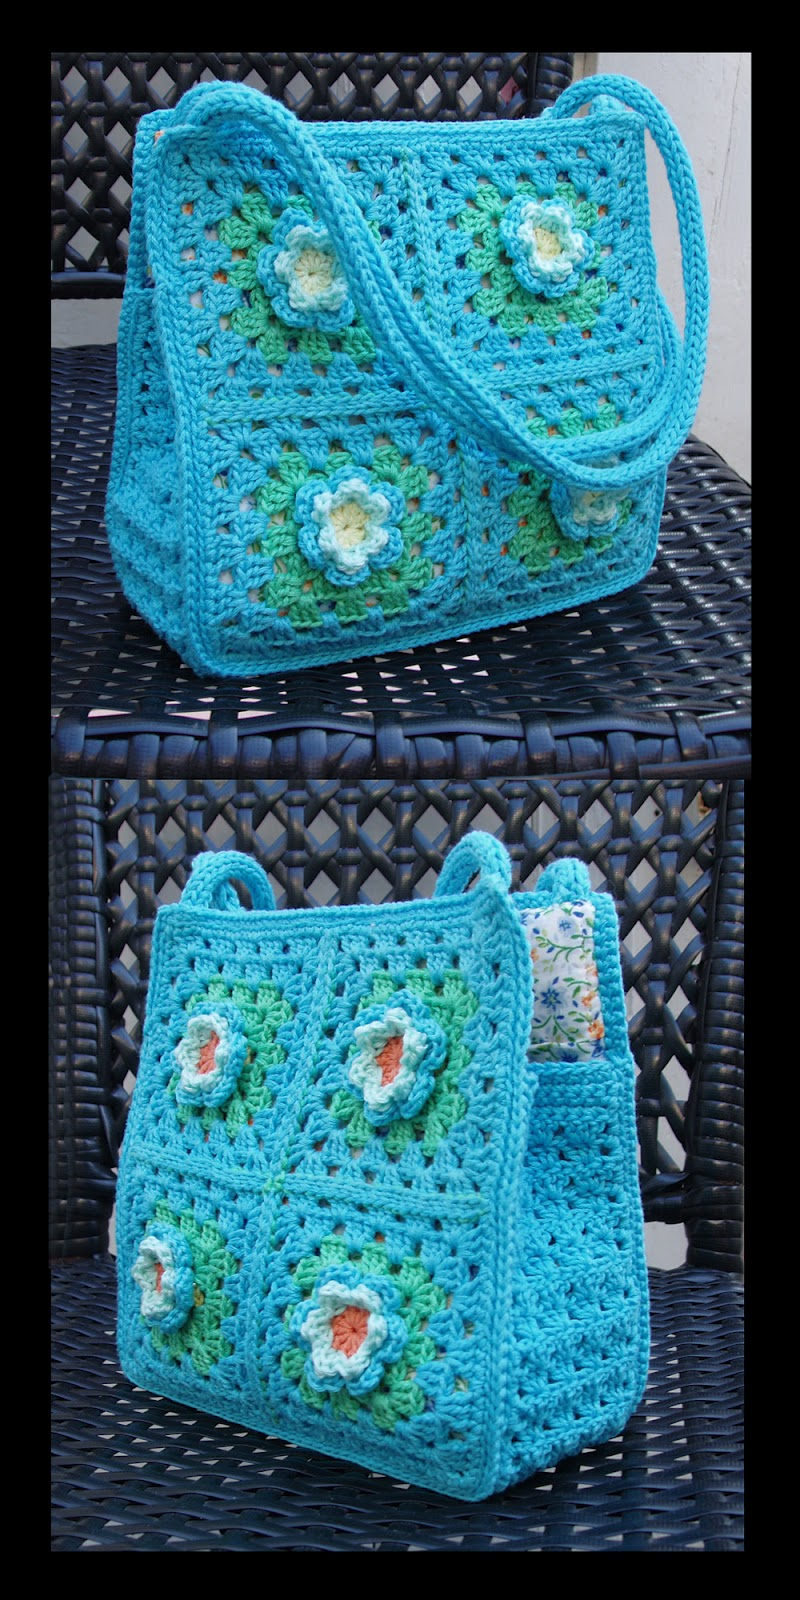 Crochet Granny Square Purse : Sophie and Me: THE GRANNY SQUARE BAG WITH FLOWERS